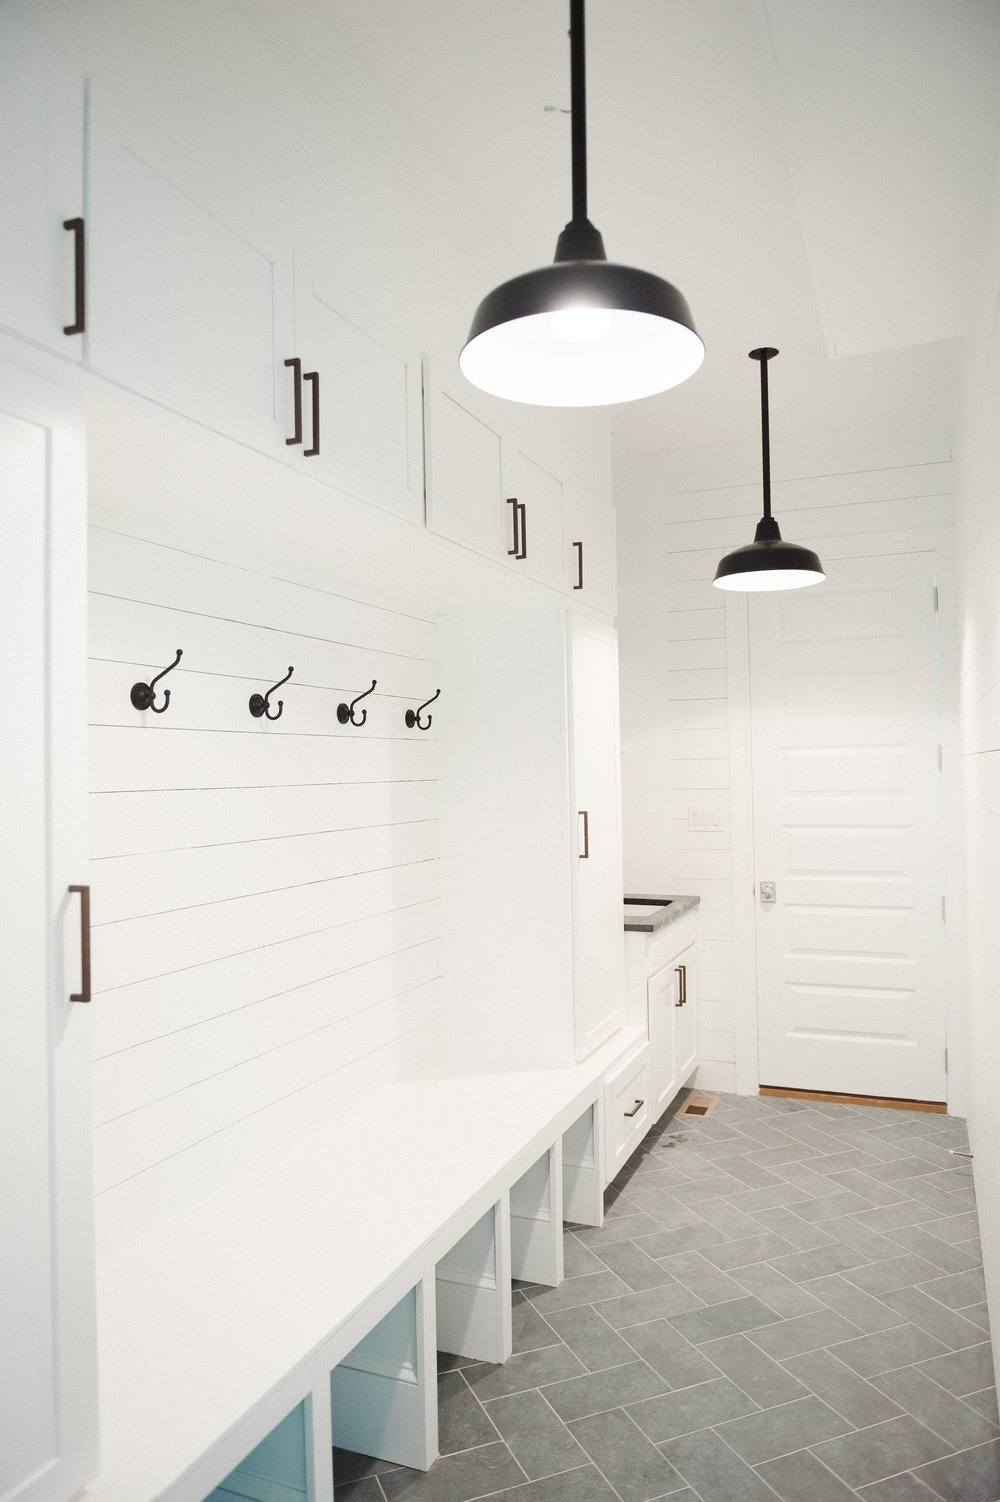 Renovated entry way with built-in coat hangers